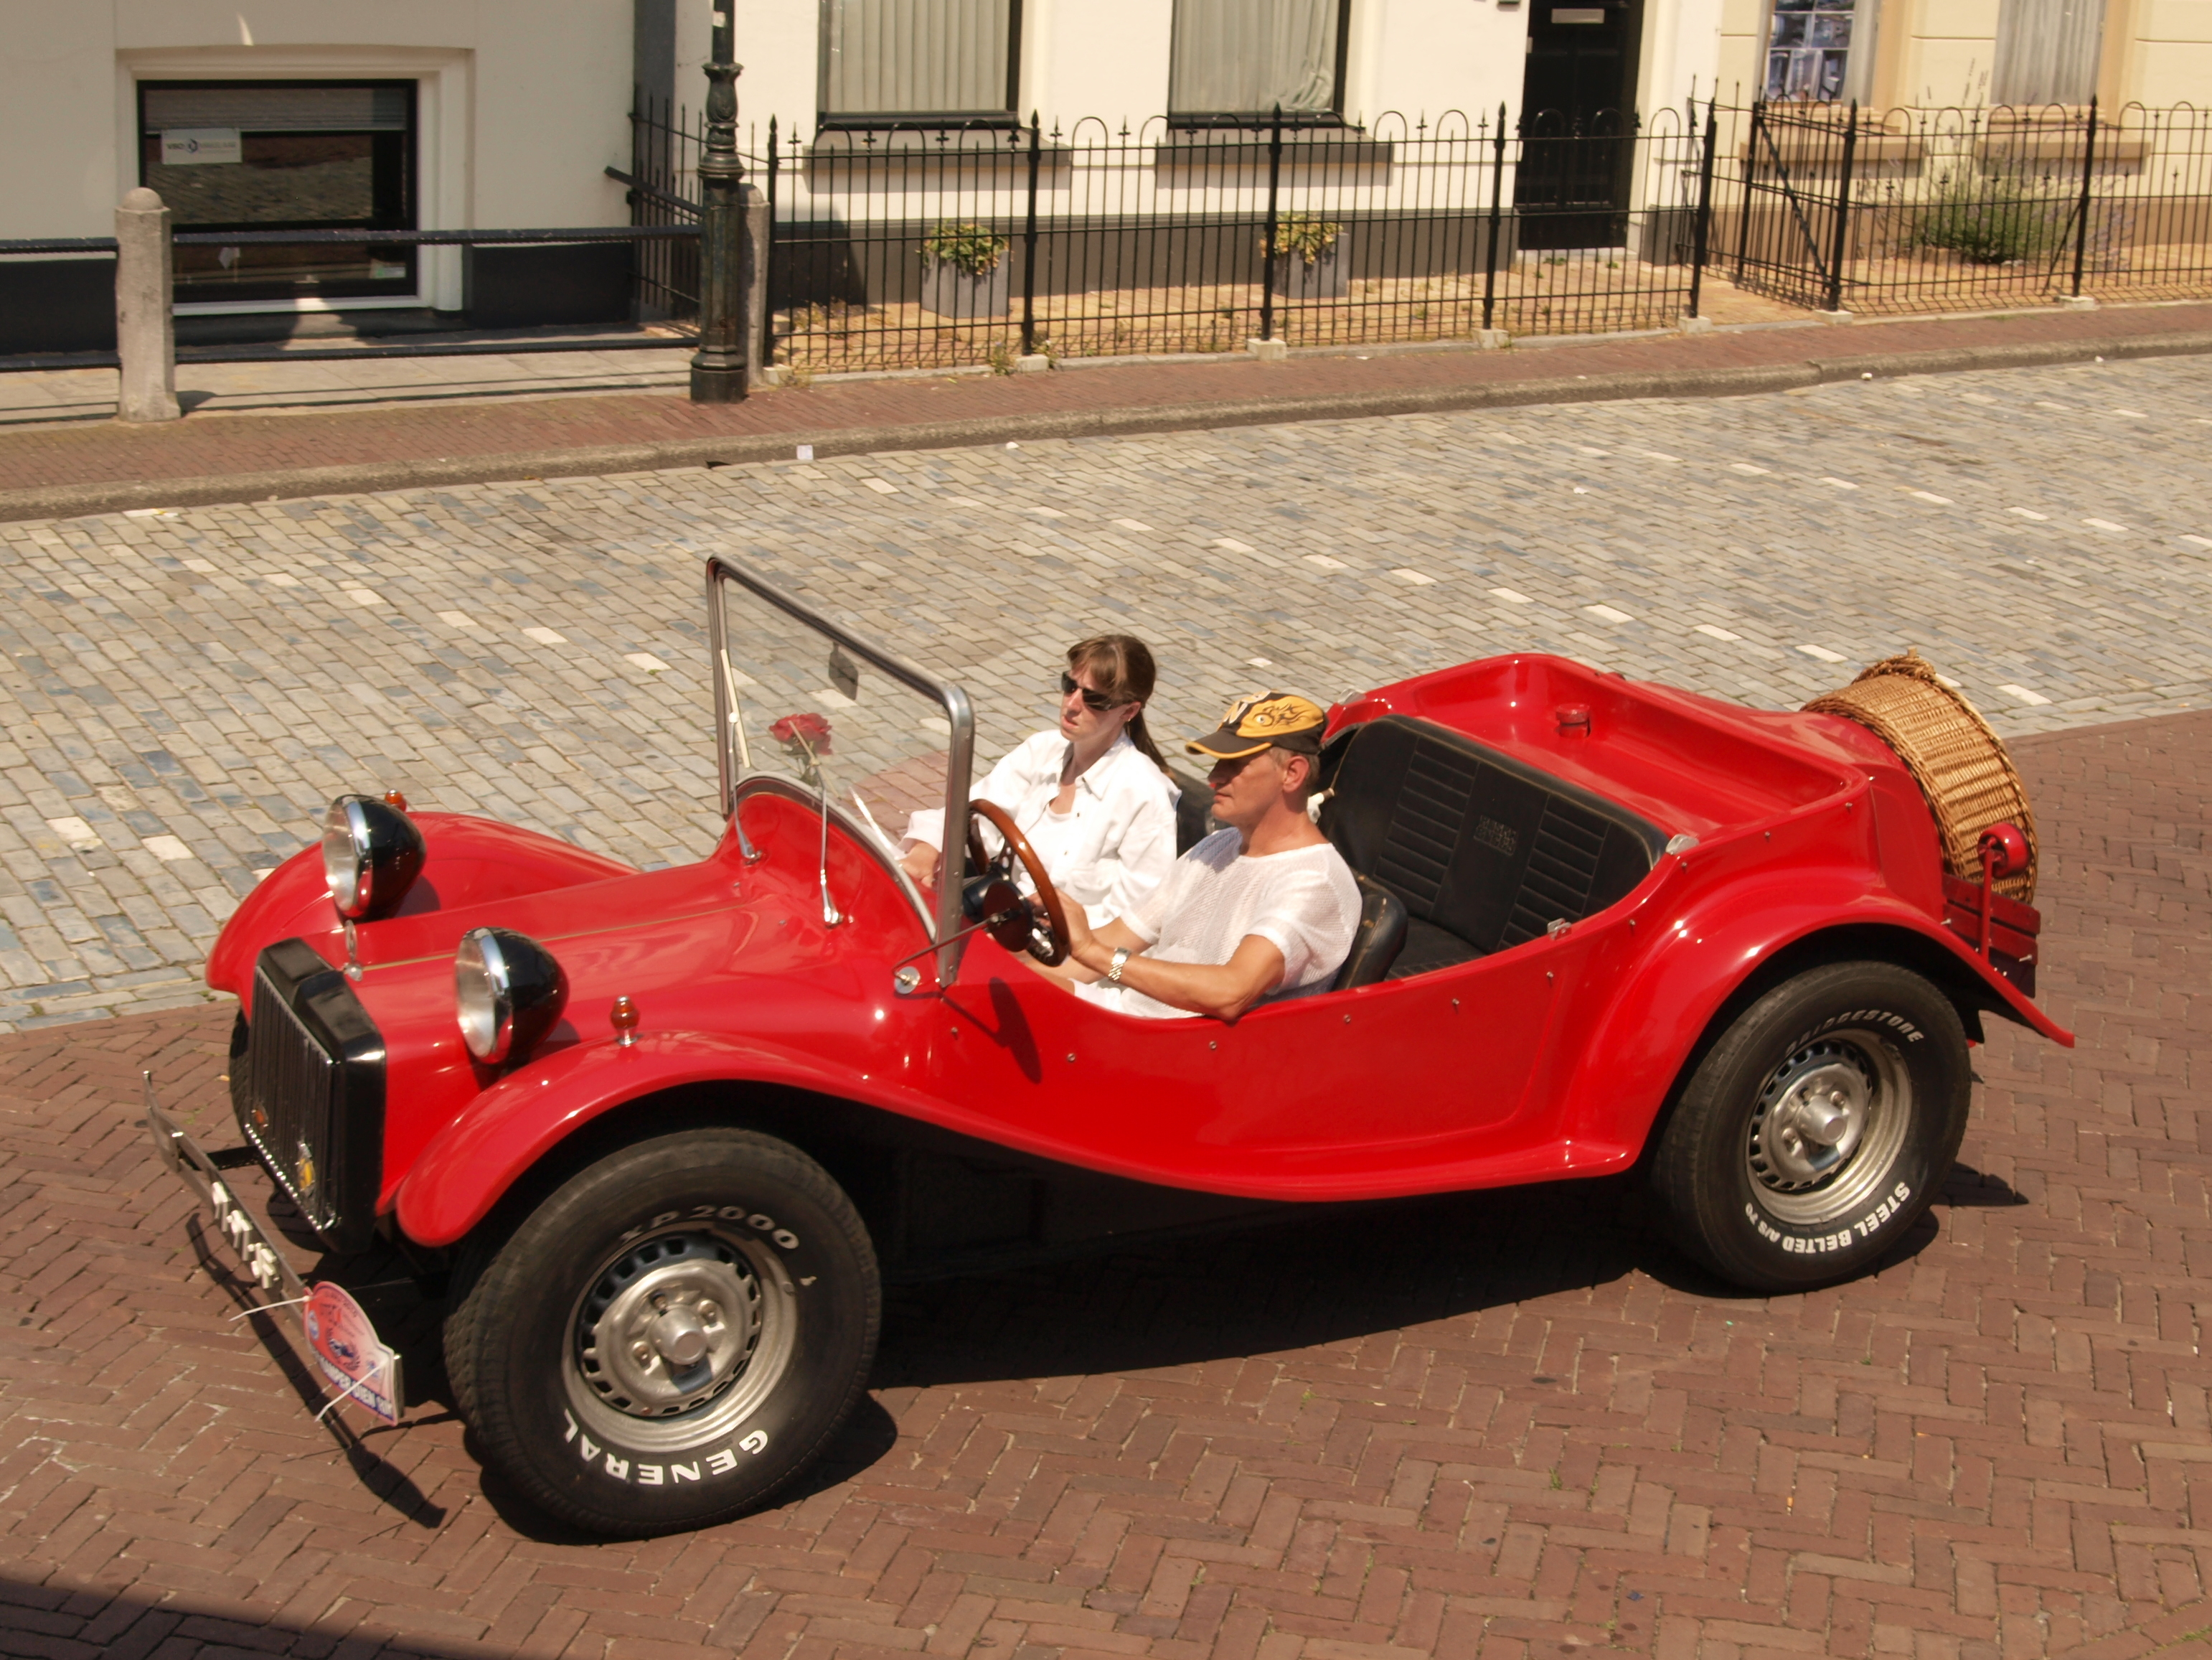 File Vw Buggy 1969 97 97 Jf P2 Jpg Wikimedia Commons